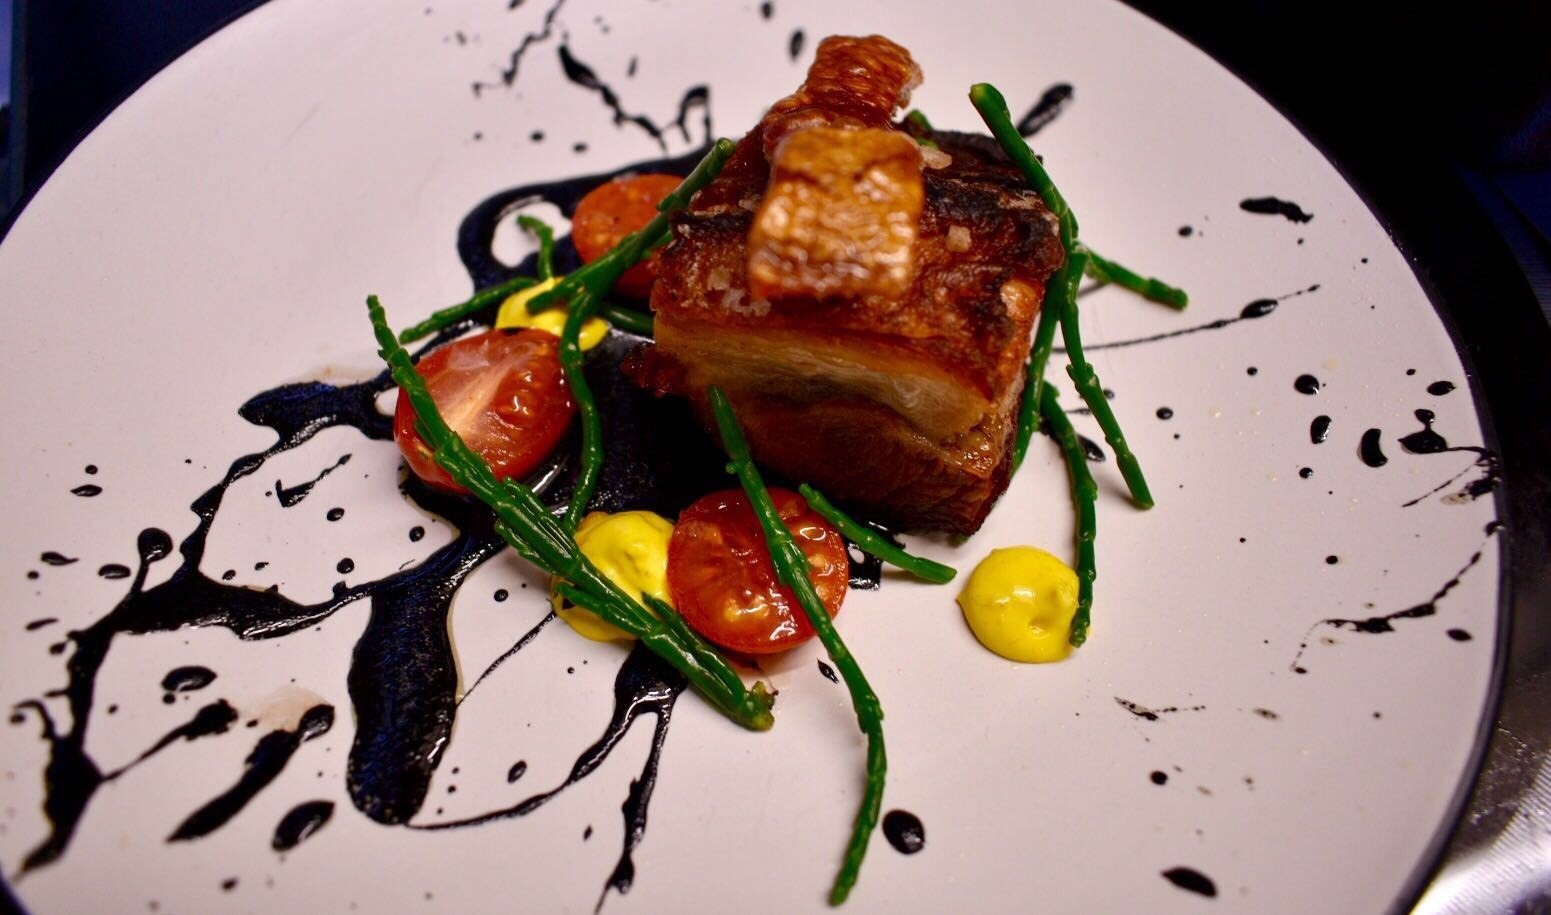 Slow braised pork belly